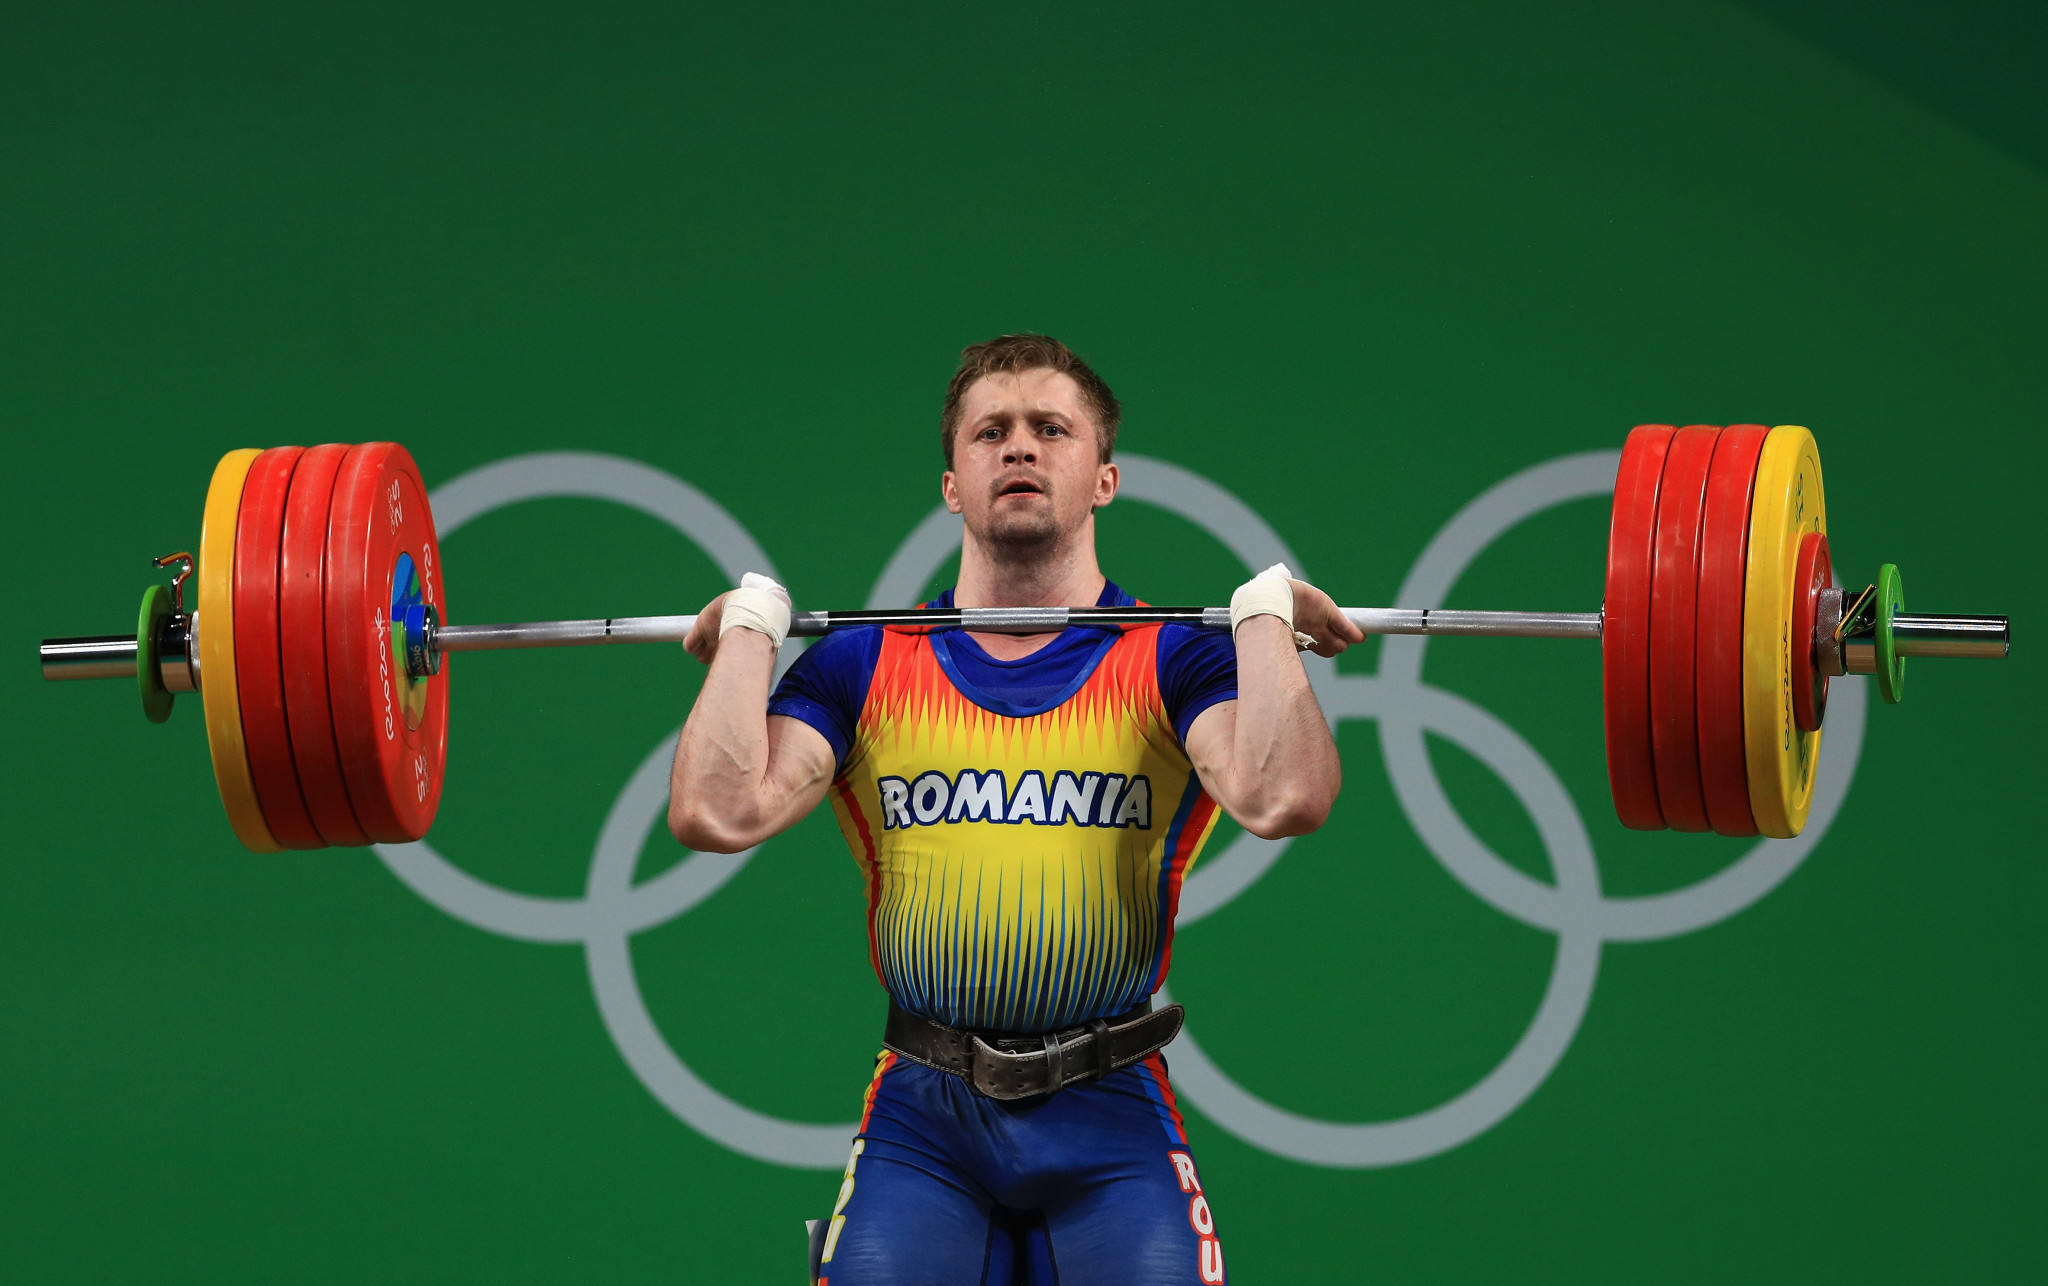 Weightlifting doping tally reaches 60 after fourth Romanian from London 2012 tests positive